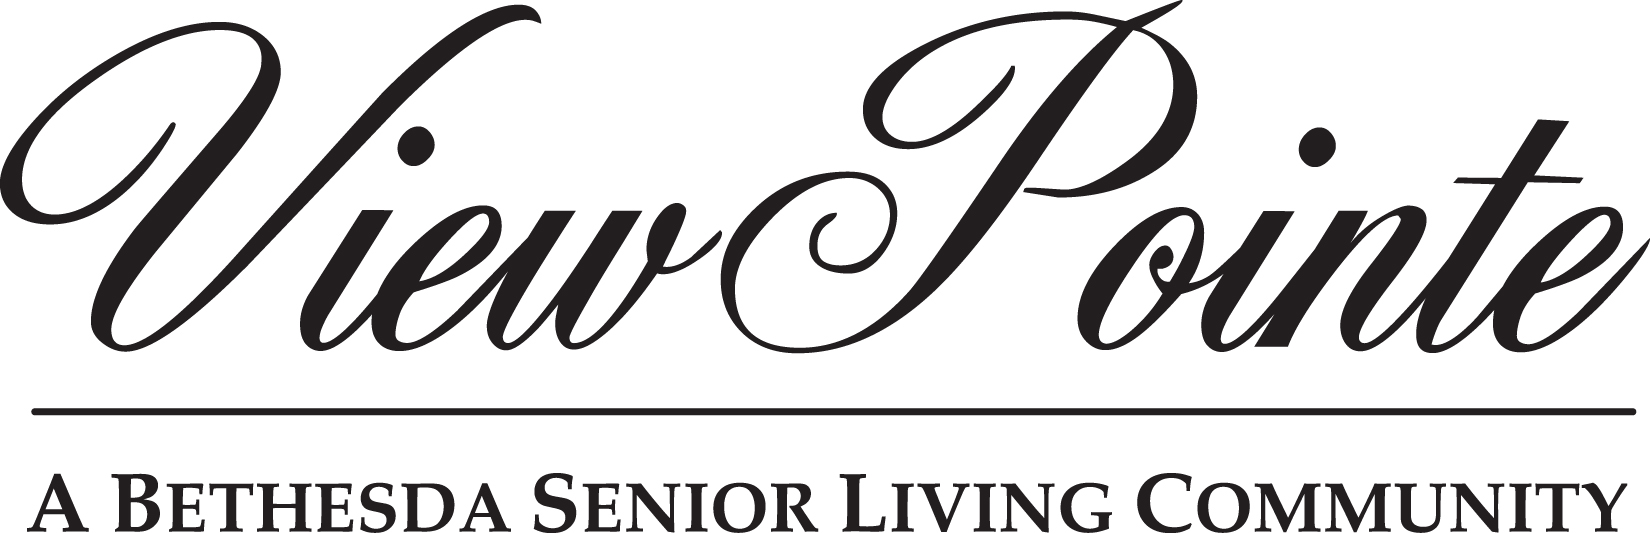 View Pointe Logo 2014